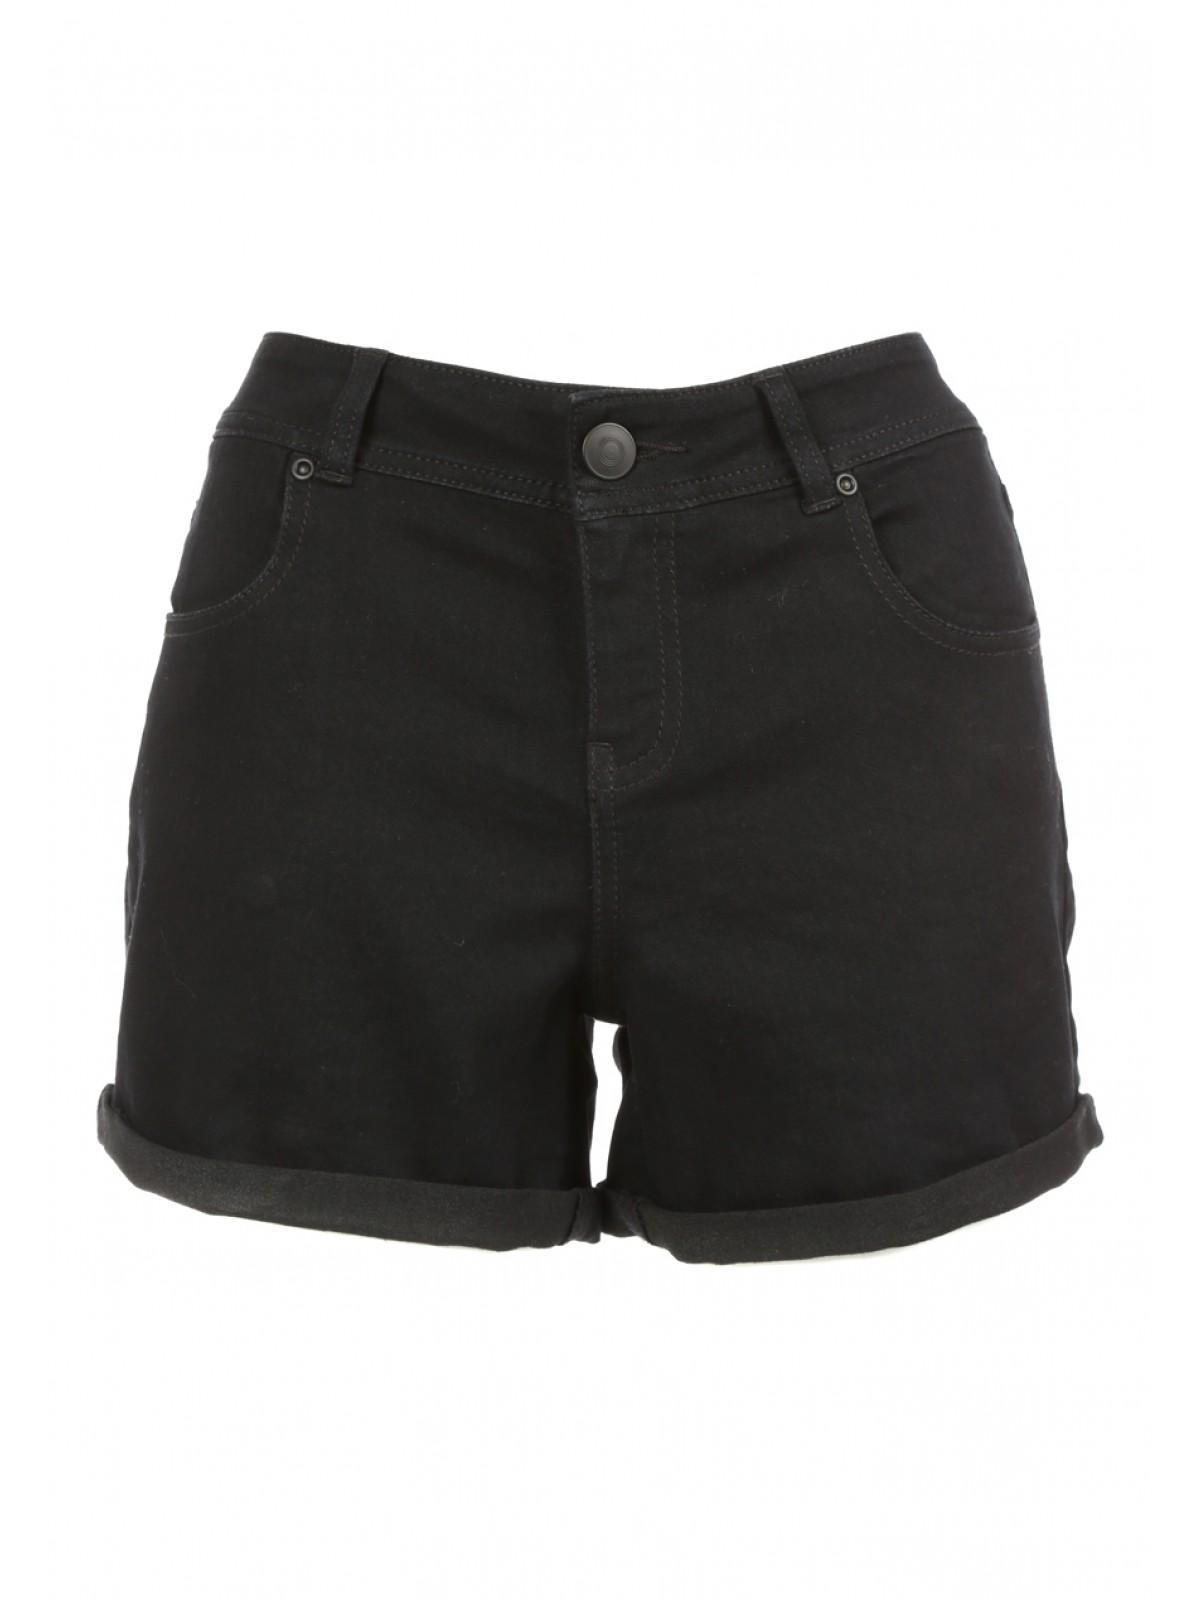 Black Denim Shorts For Women - The Else